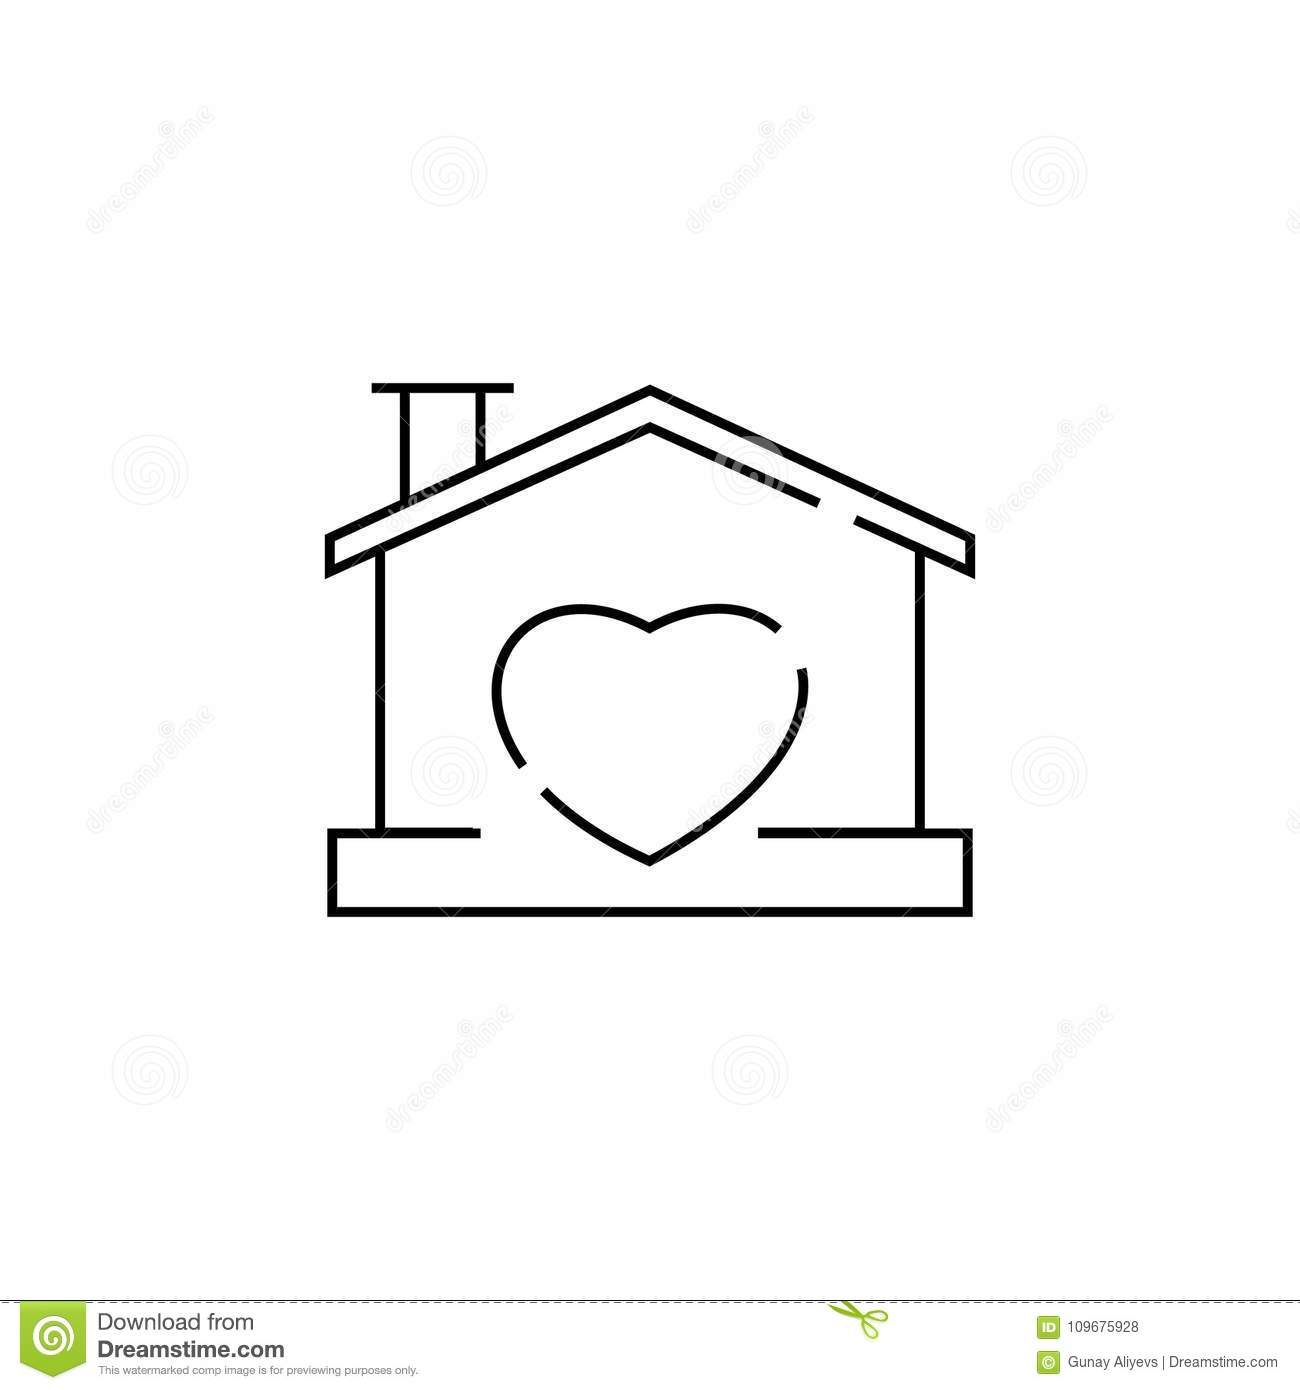 House with heart shape within icon stock illustration house with heart shape within icon biocorpaavc Images